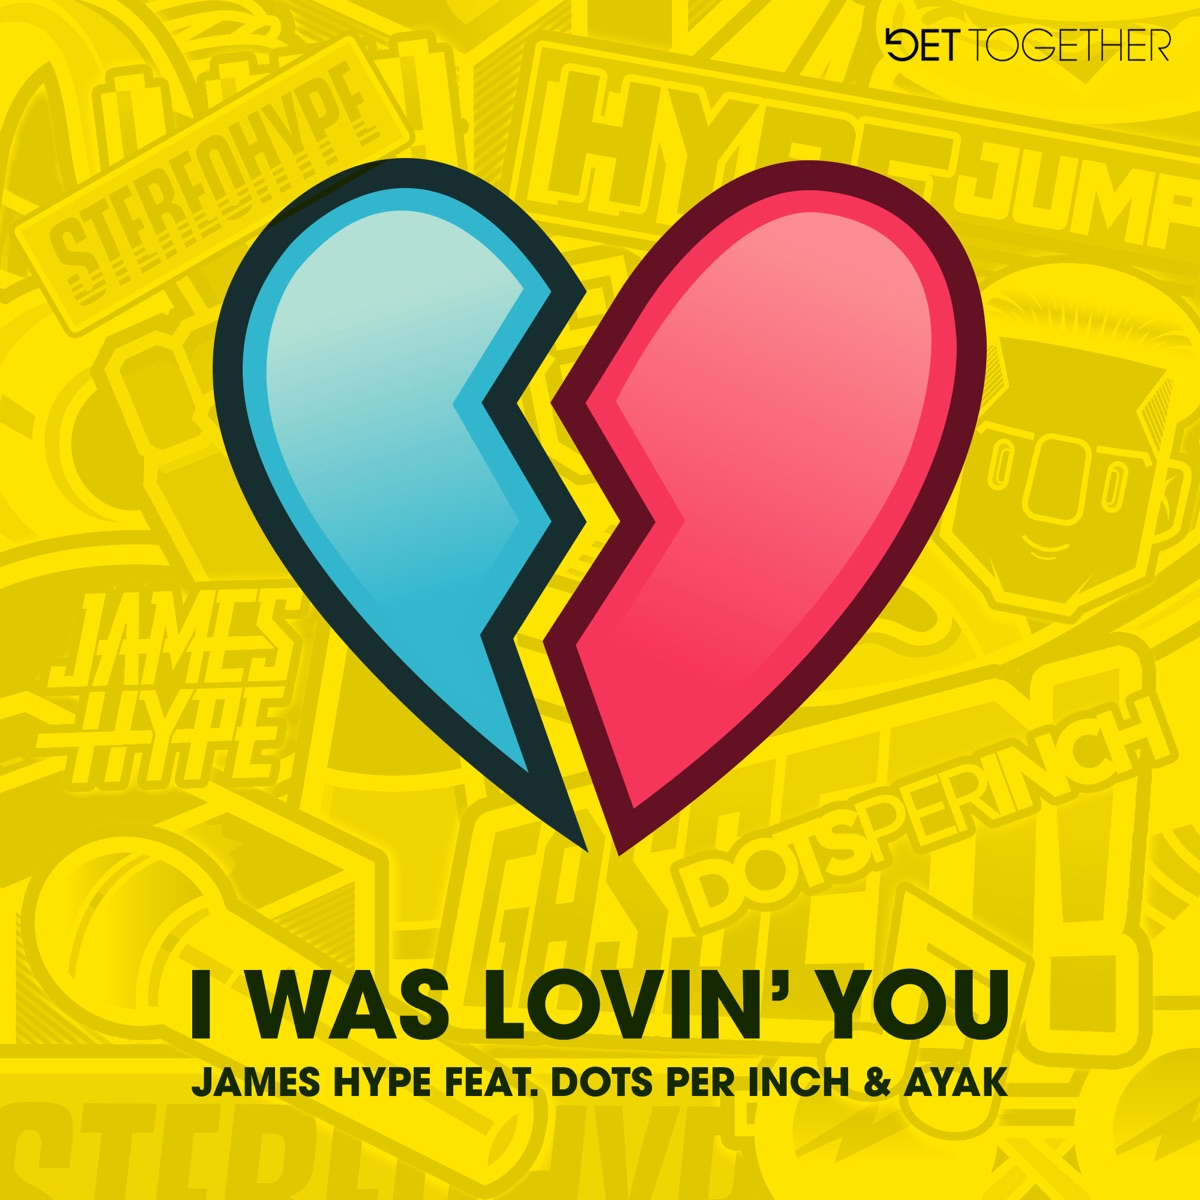 I Was Lovin' You Album Cover by James Hype